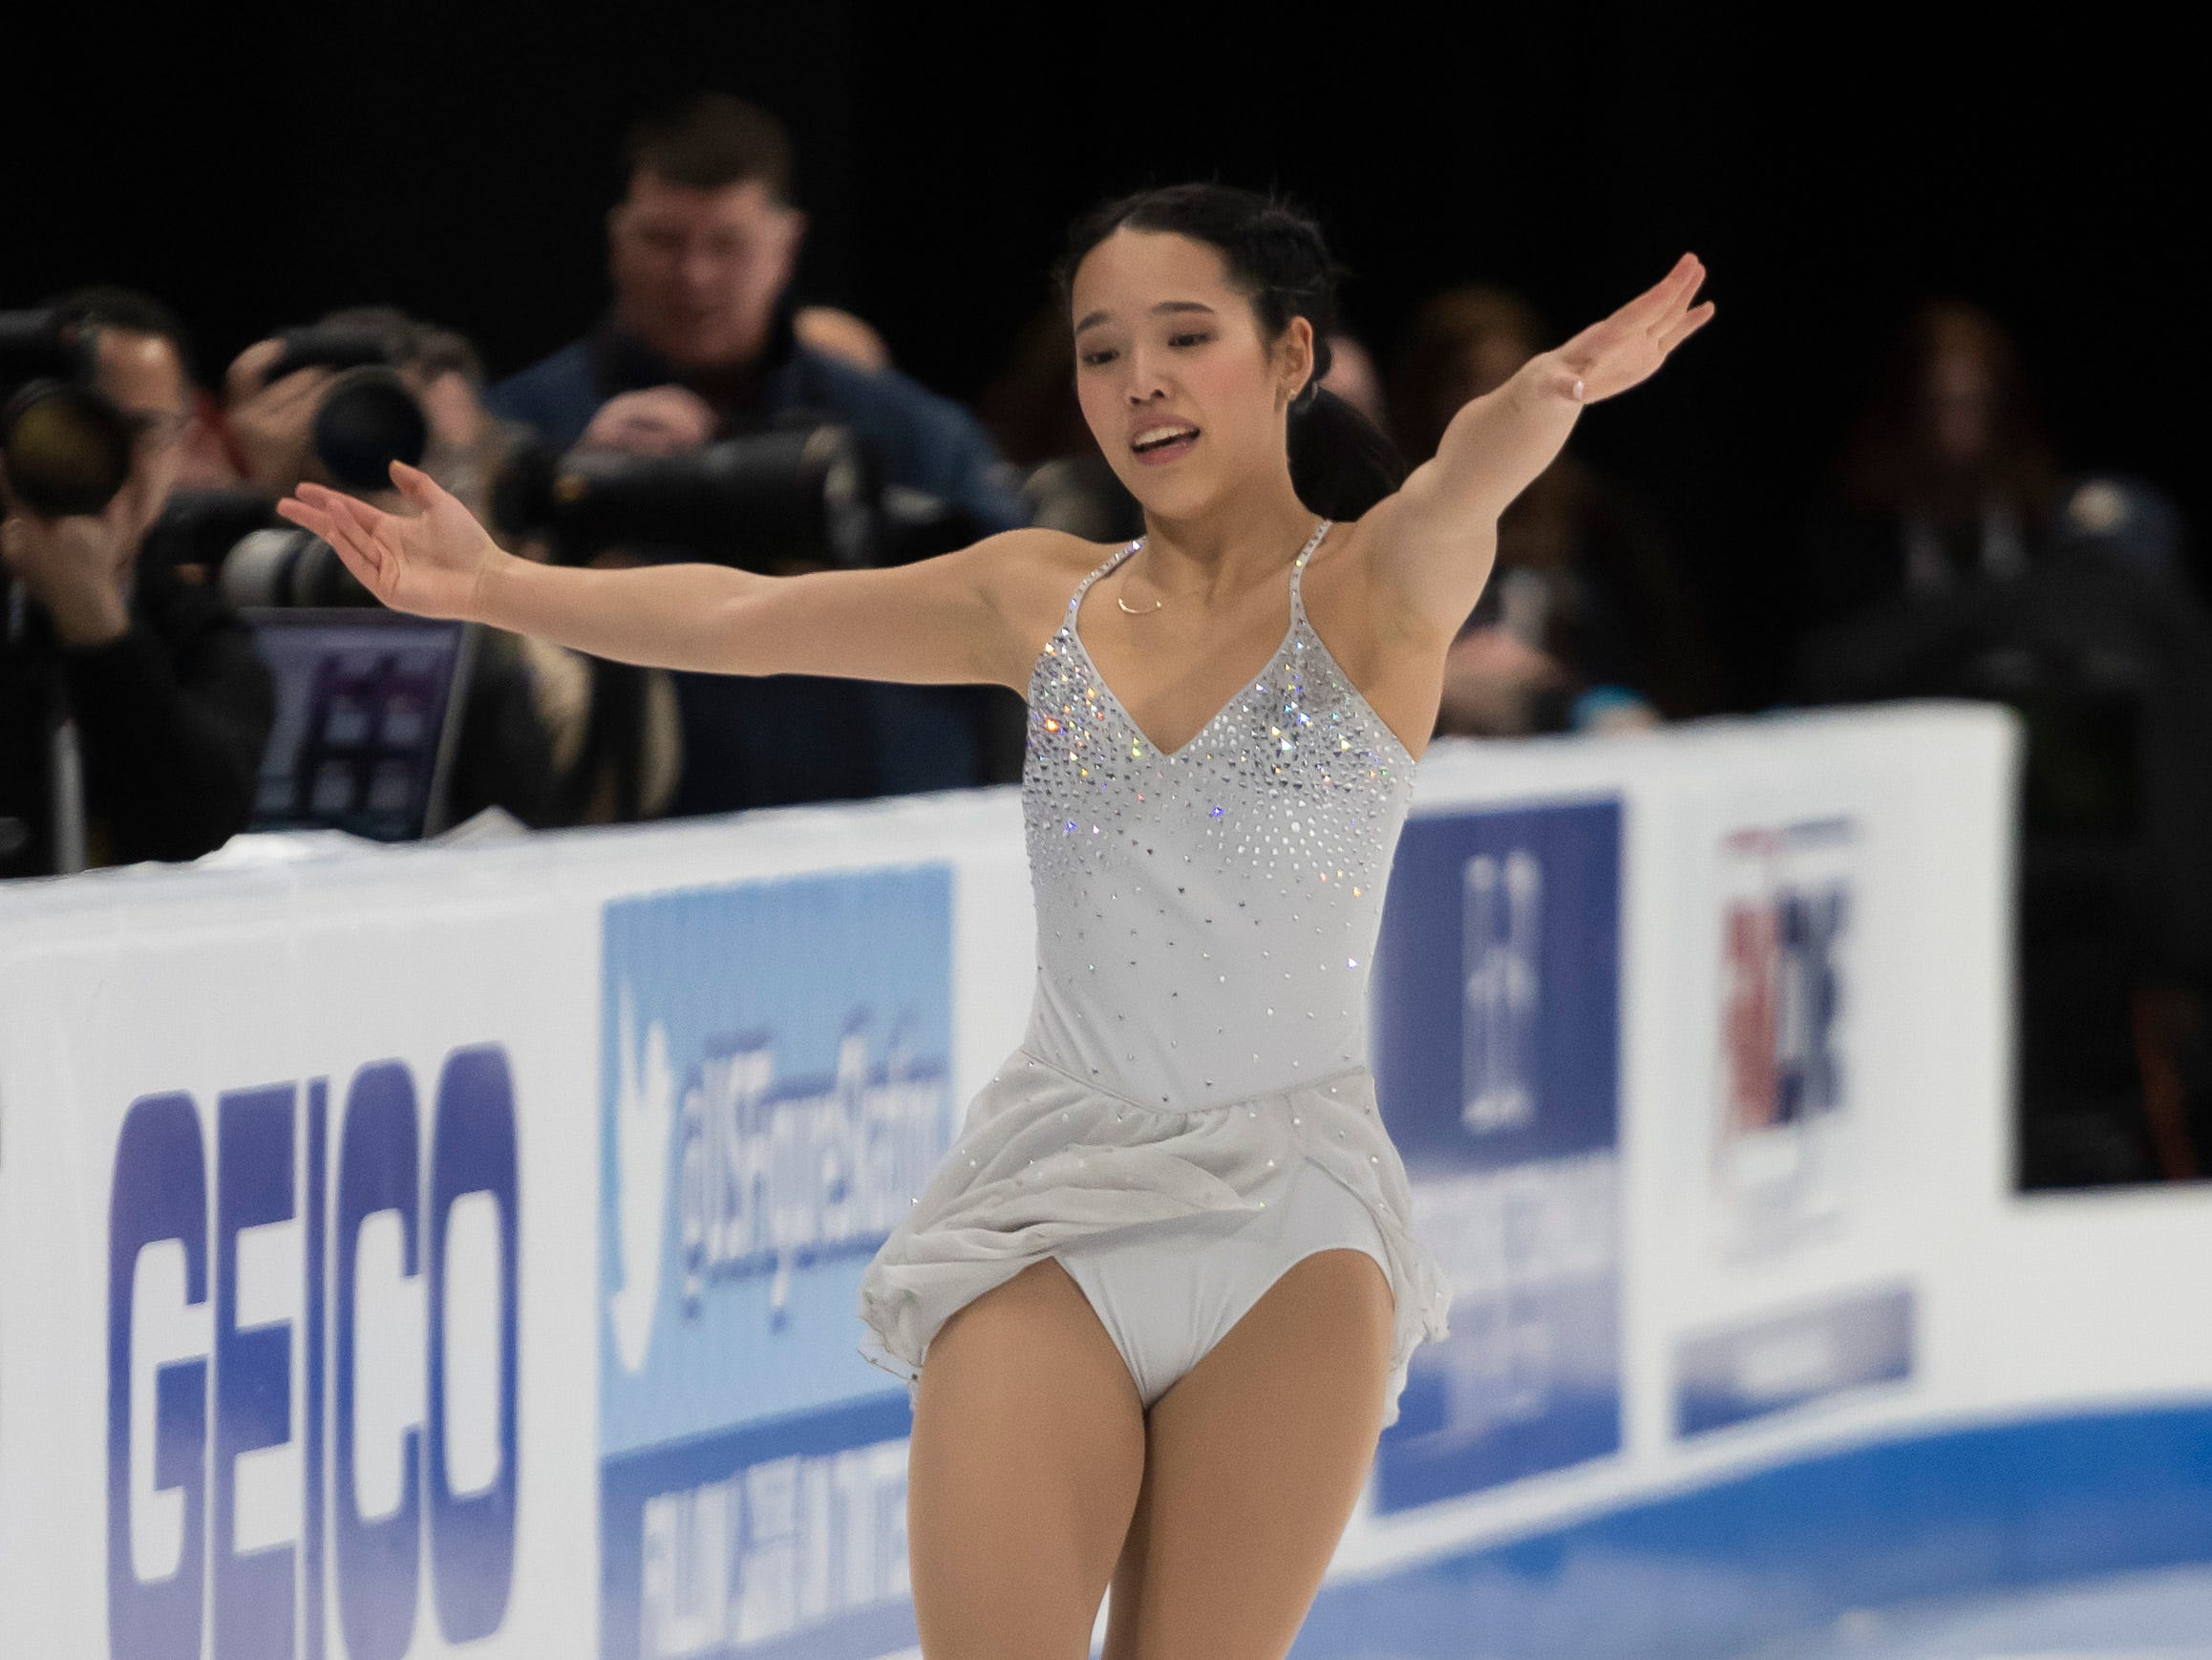 Rena Ikenishi competes in the ladies short program.